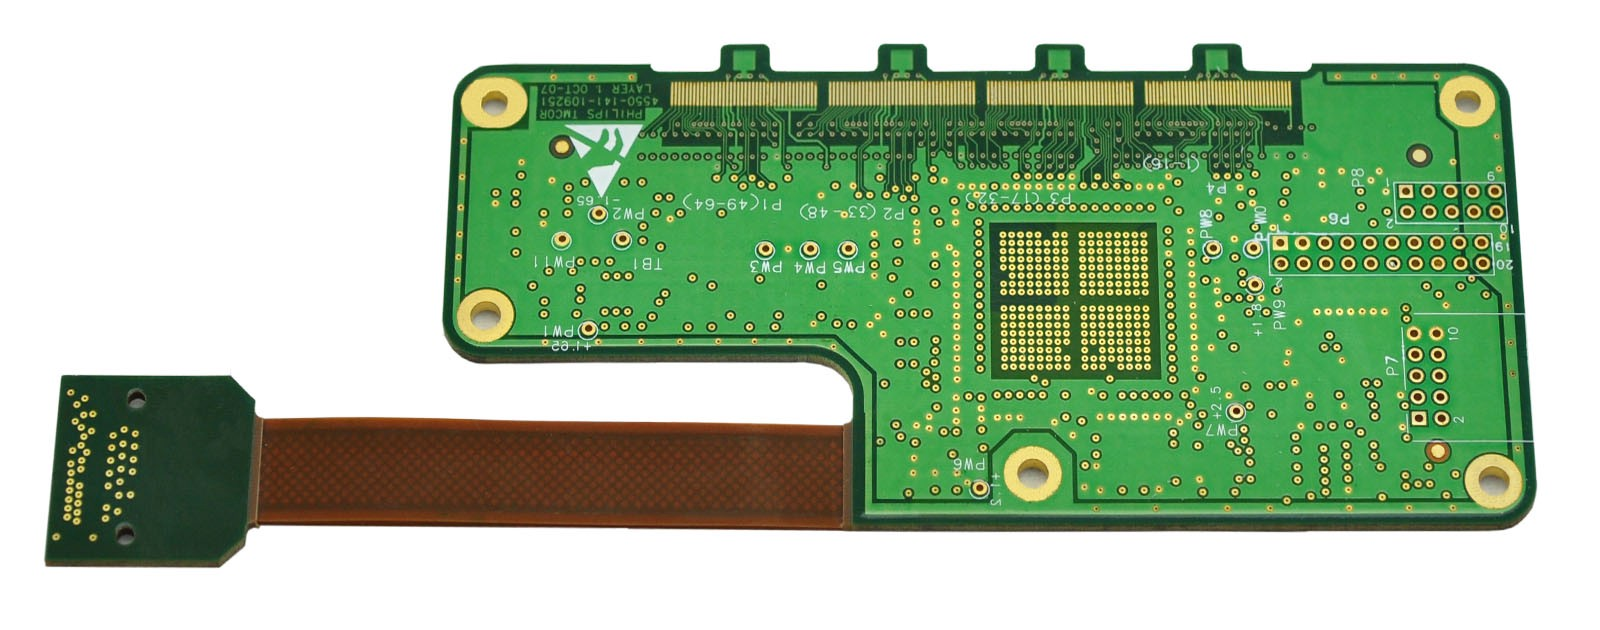 The Benefits Of Multilayer Printed Circuit Board That Flourish Boards Pcb From Advanced Flexible Options To Odd Shaped Varieties Are Available In Much More Varied Nowadays World